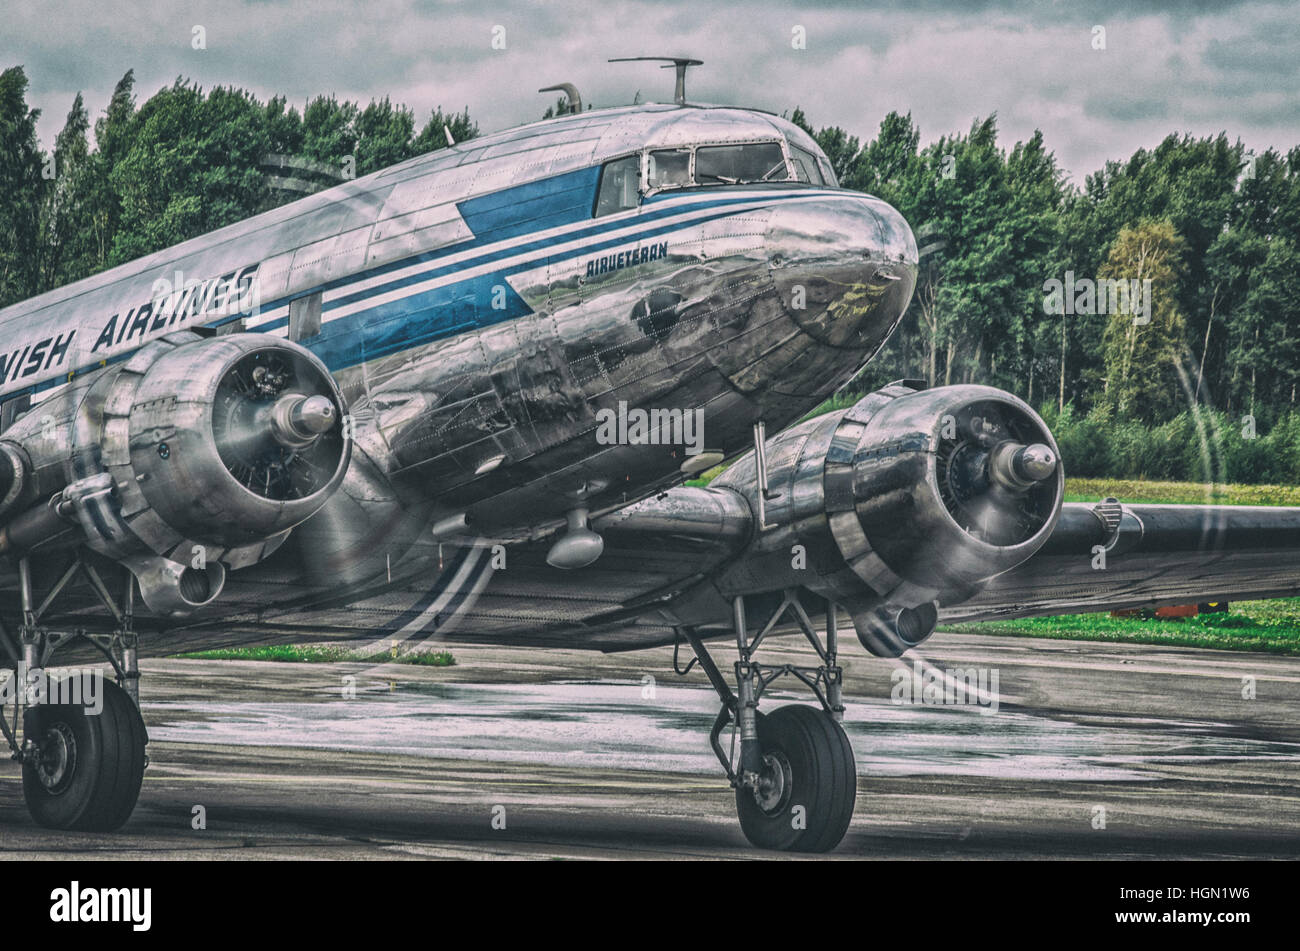 Airliner veteran, Douglas DC-3 at Helsinki-Malmi Airport - Stock Image